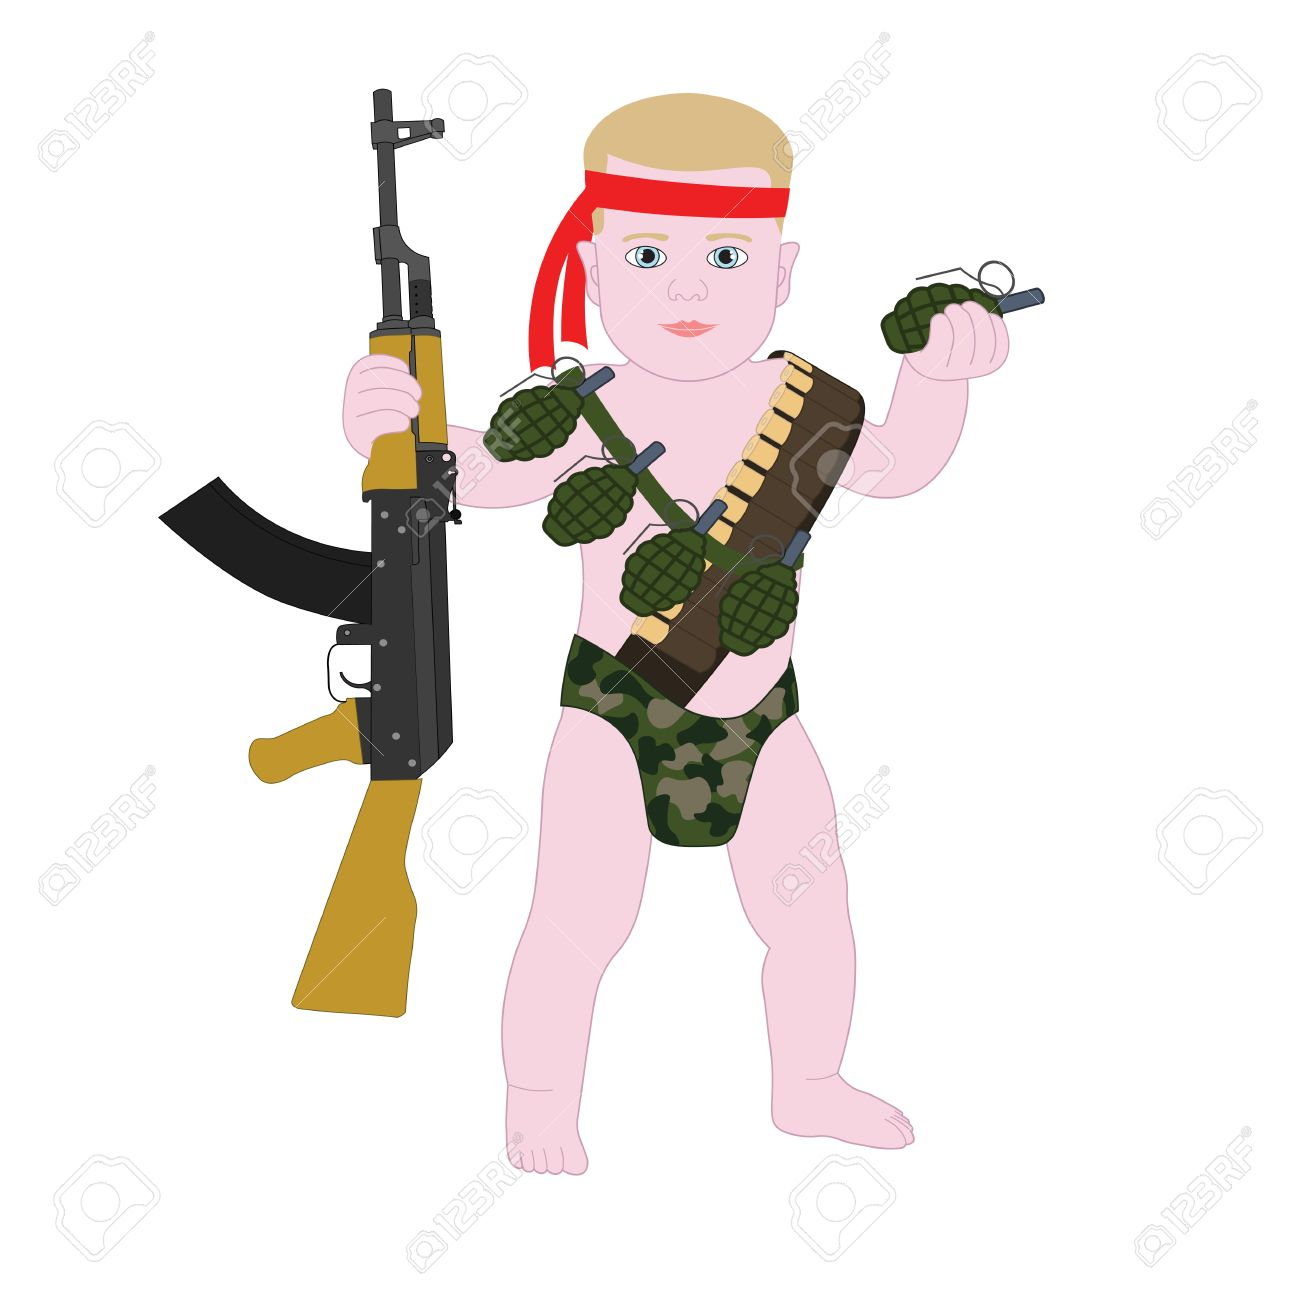 a493ff4d1 Baby boy soldier in diapers. Funny cartoon military Baby Rambo. Stock  Vector - 53521946